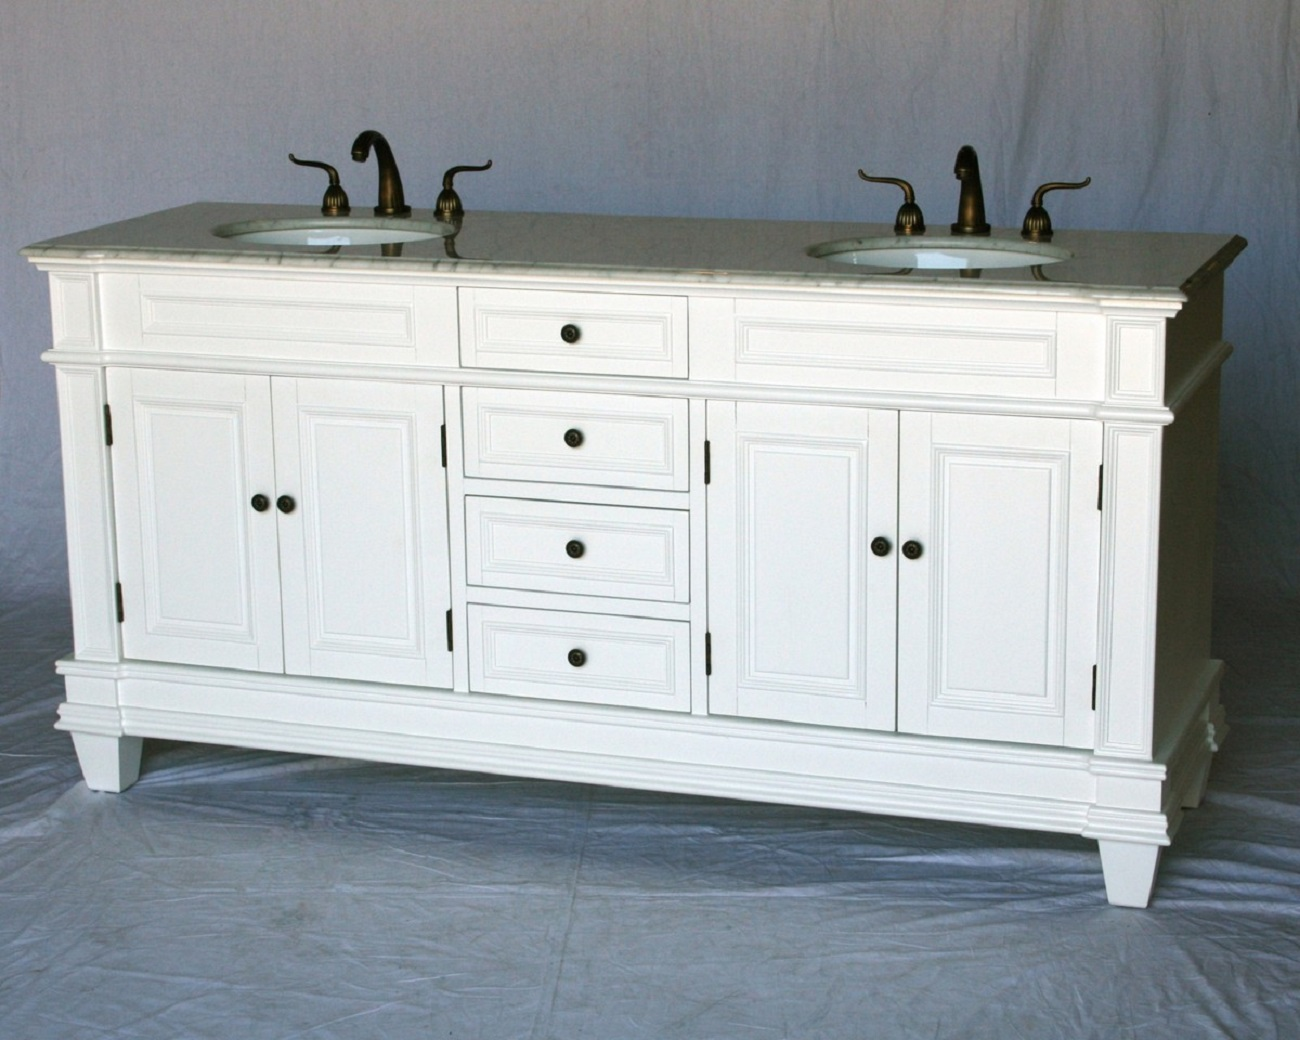 72 inch Double Sink Transitional Bathroom Vanity White